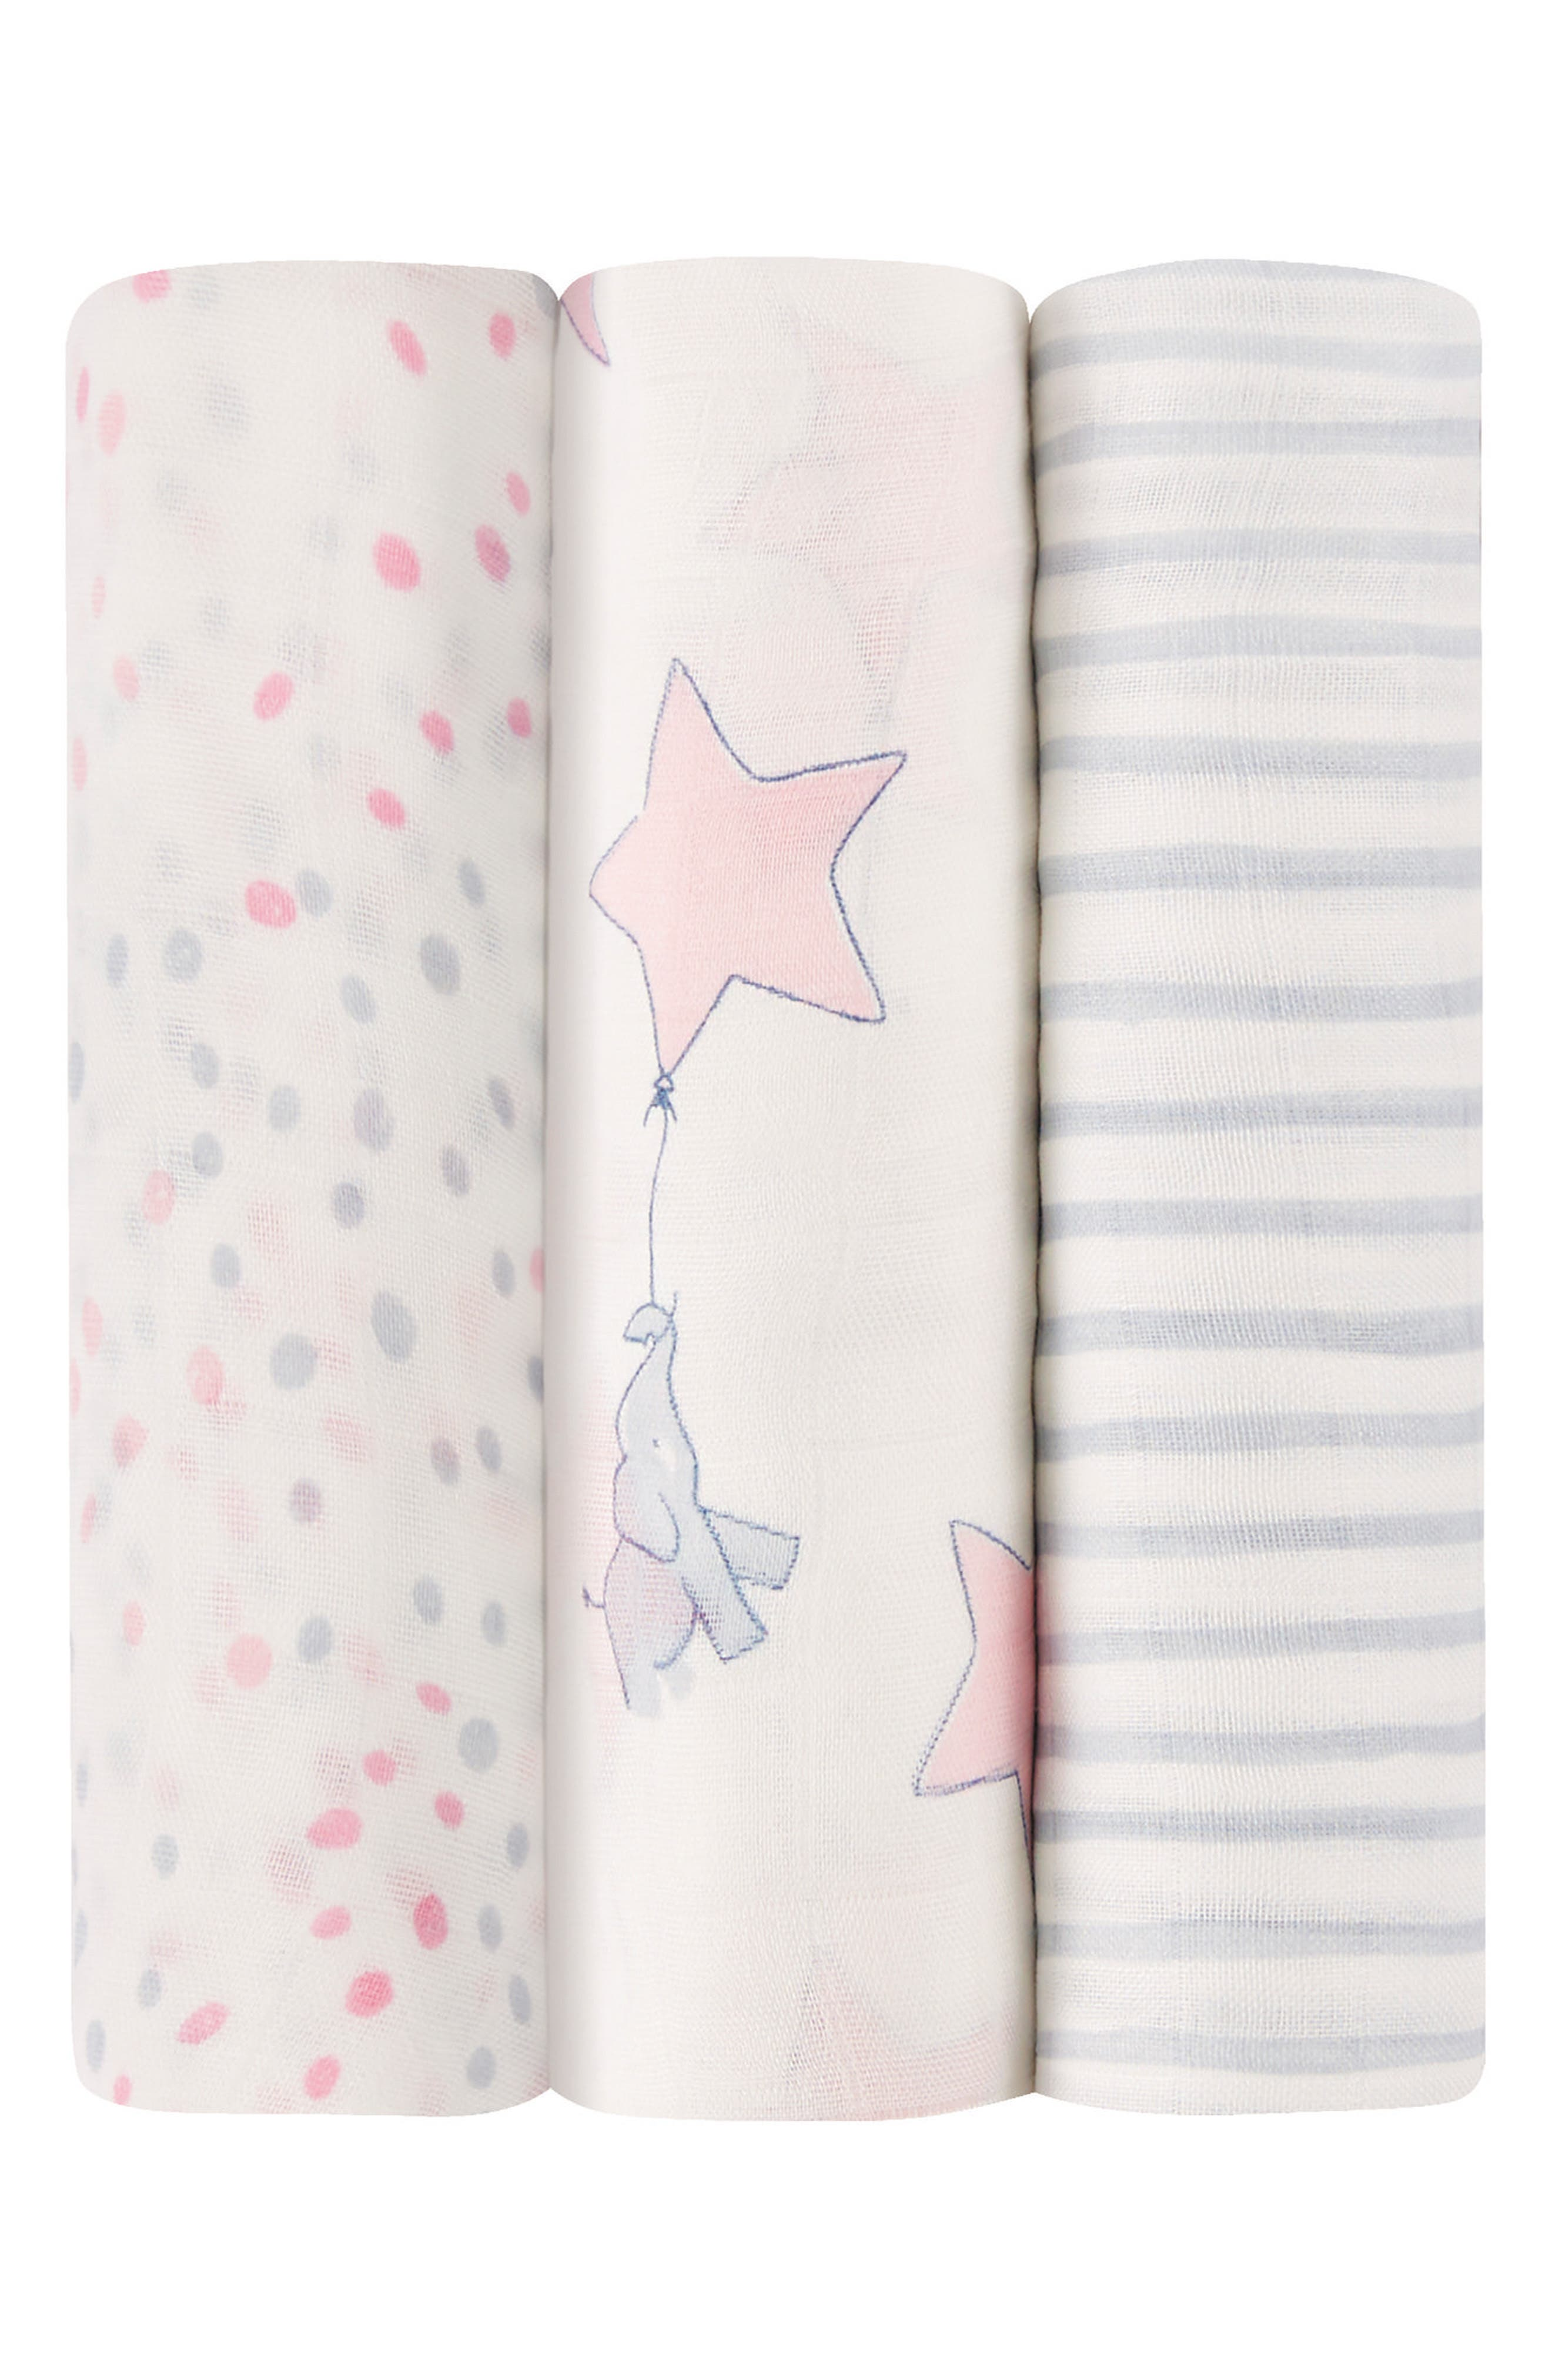 aden + anais Silky Soft Pack of 3 Swaddling Cloths (Nordstrom Exclusive)